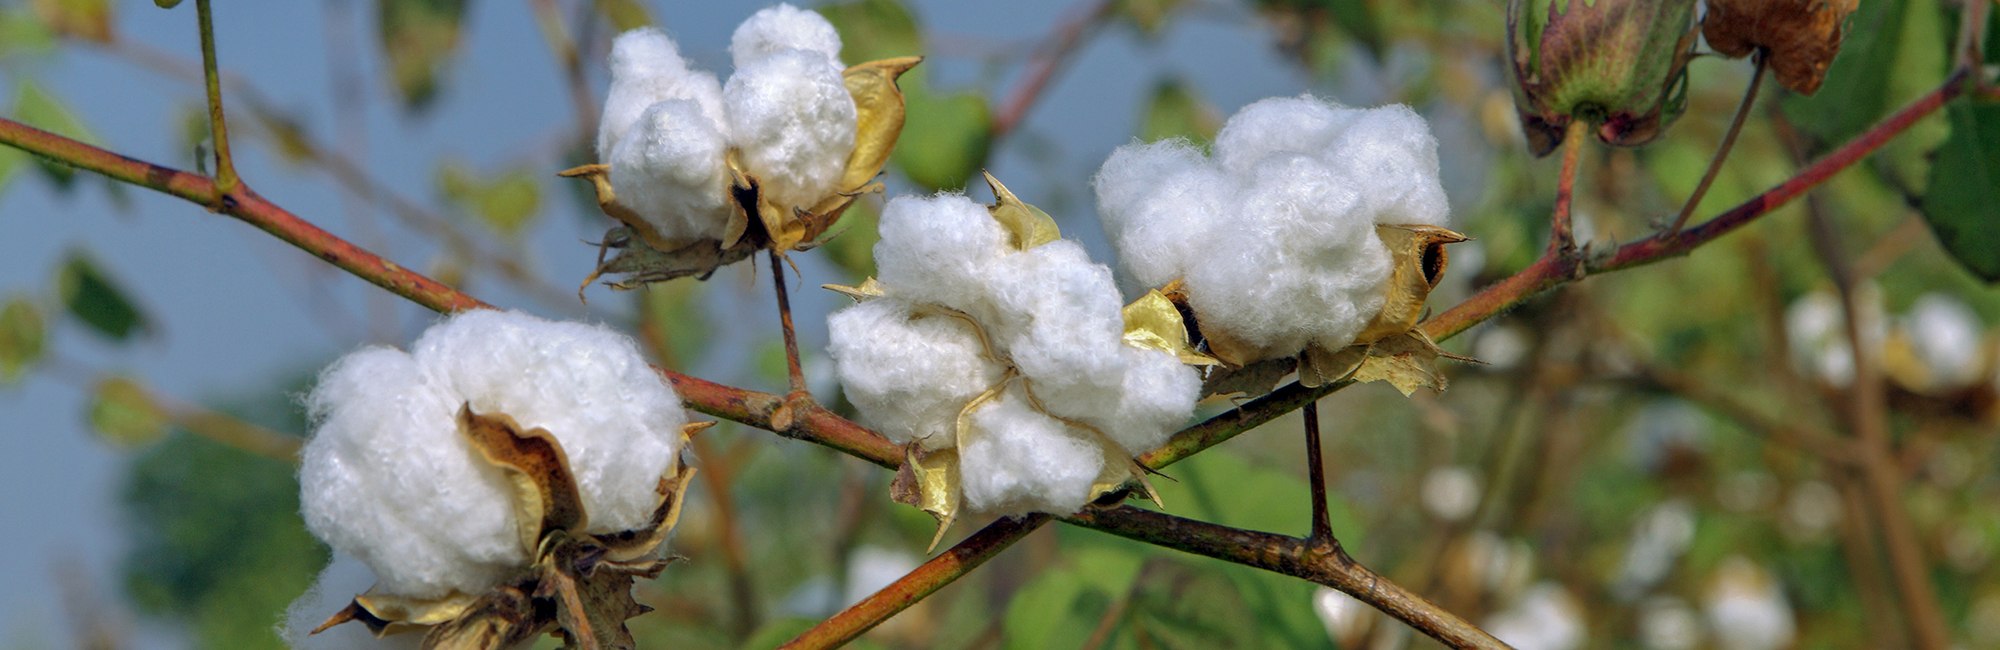 Myth Buster: Egyptian Cotton – a luxury or ancient myth? - News - CLEAN Services